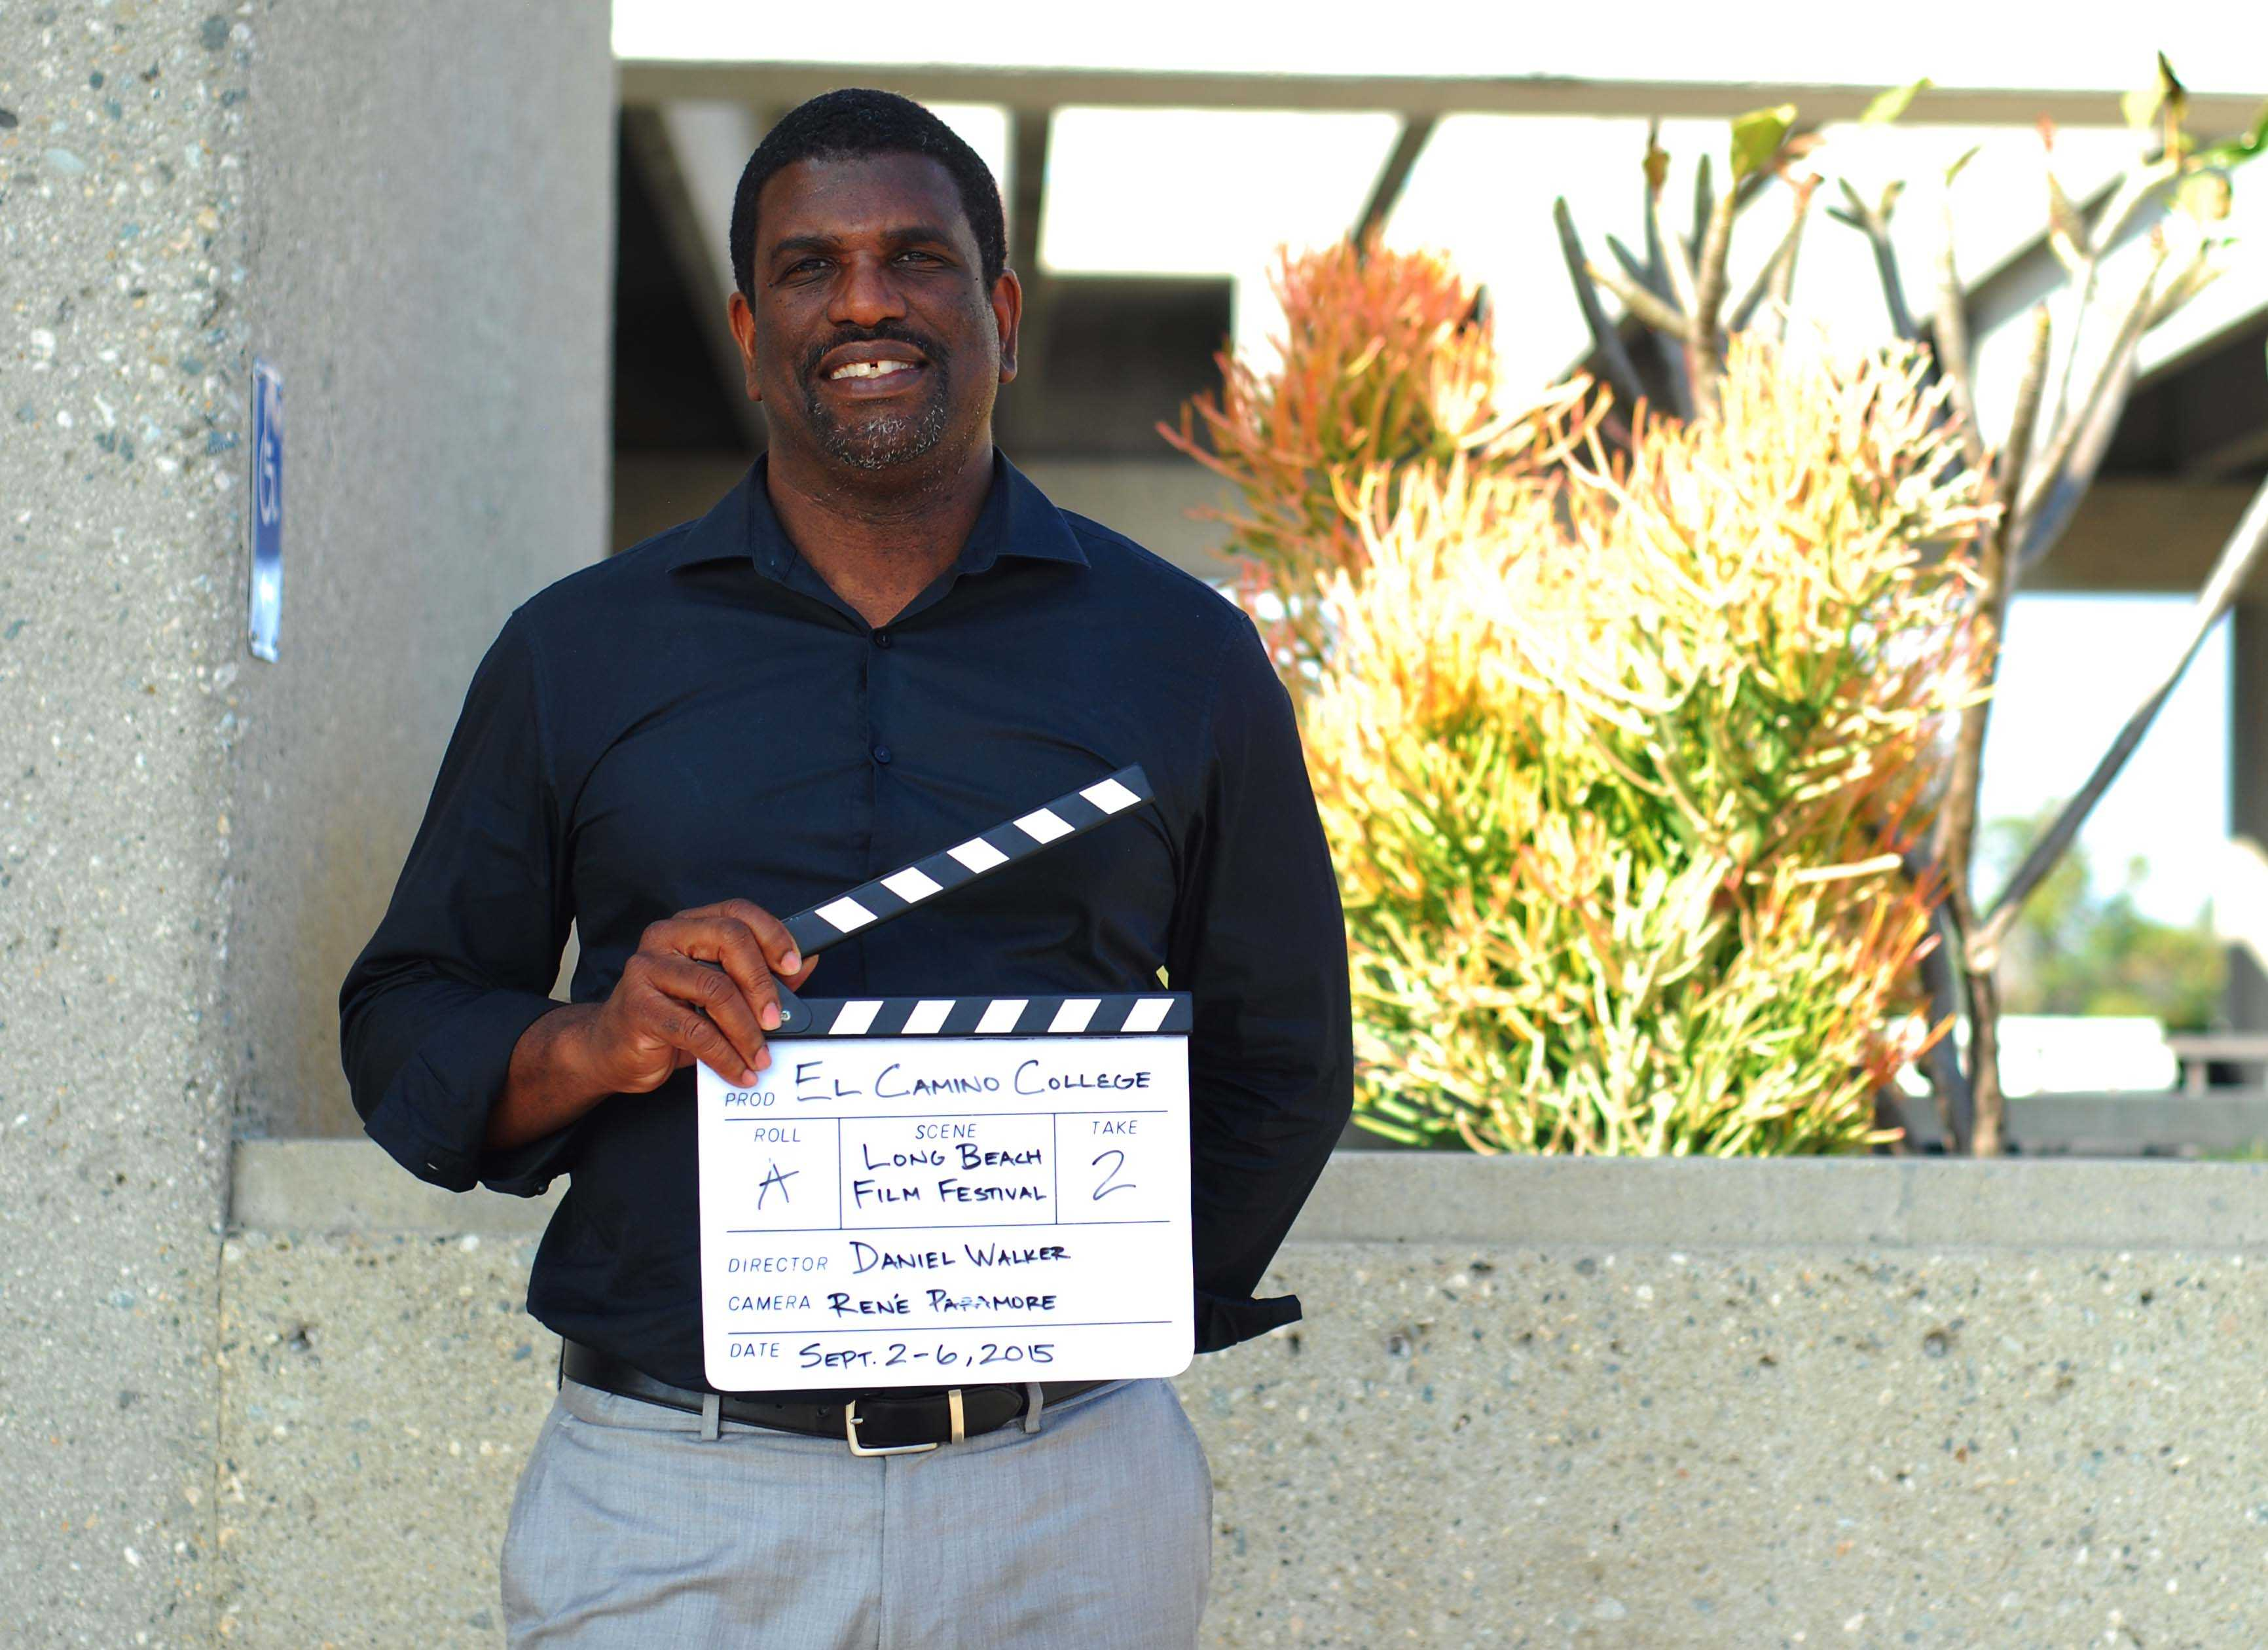 Daniel Walker, a history professor, is the founding director of the Long Beach Independent Film Festival. Photo credit: Rene Paramore